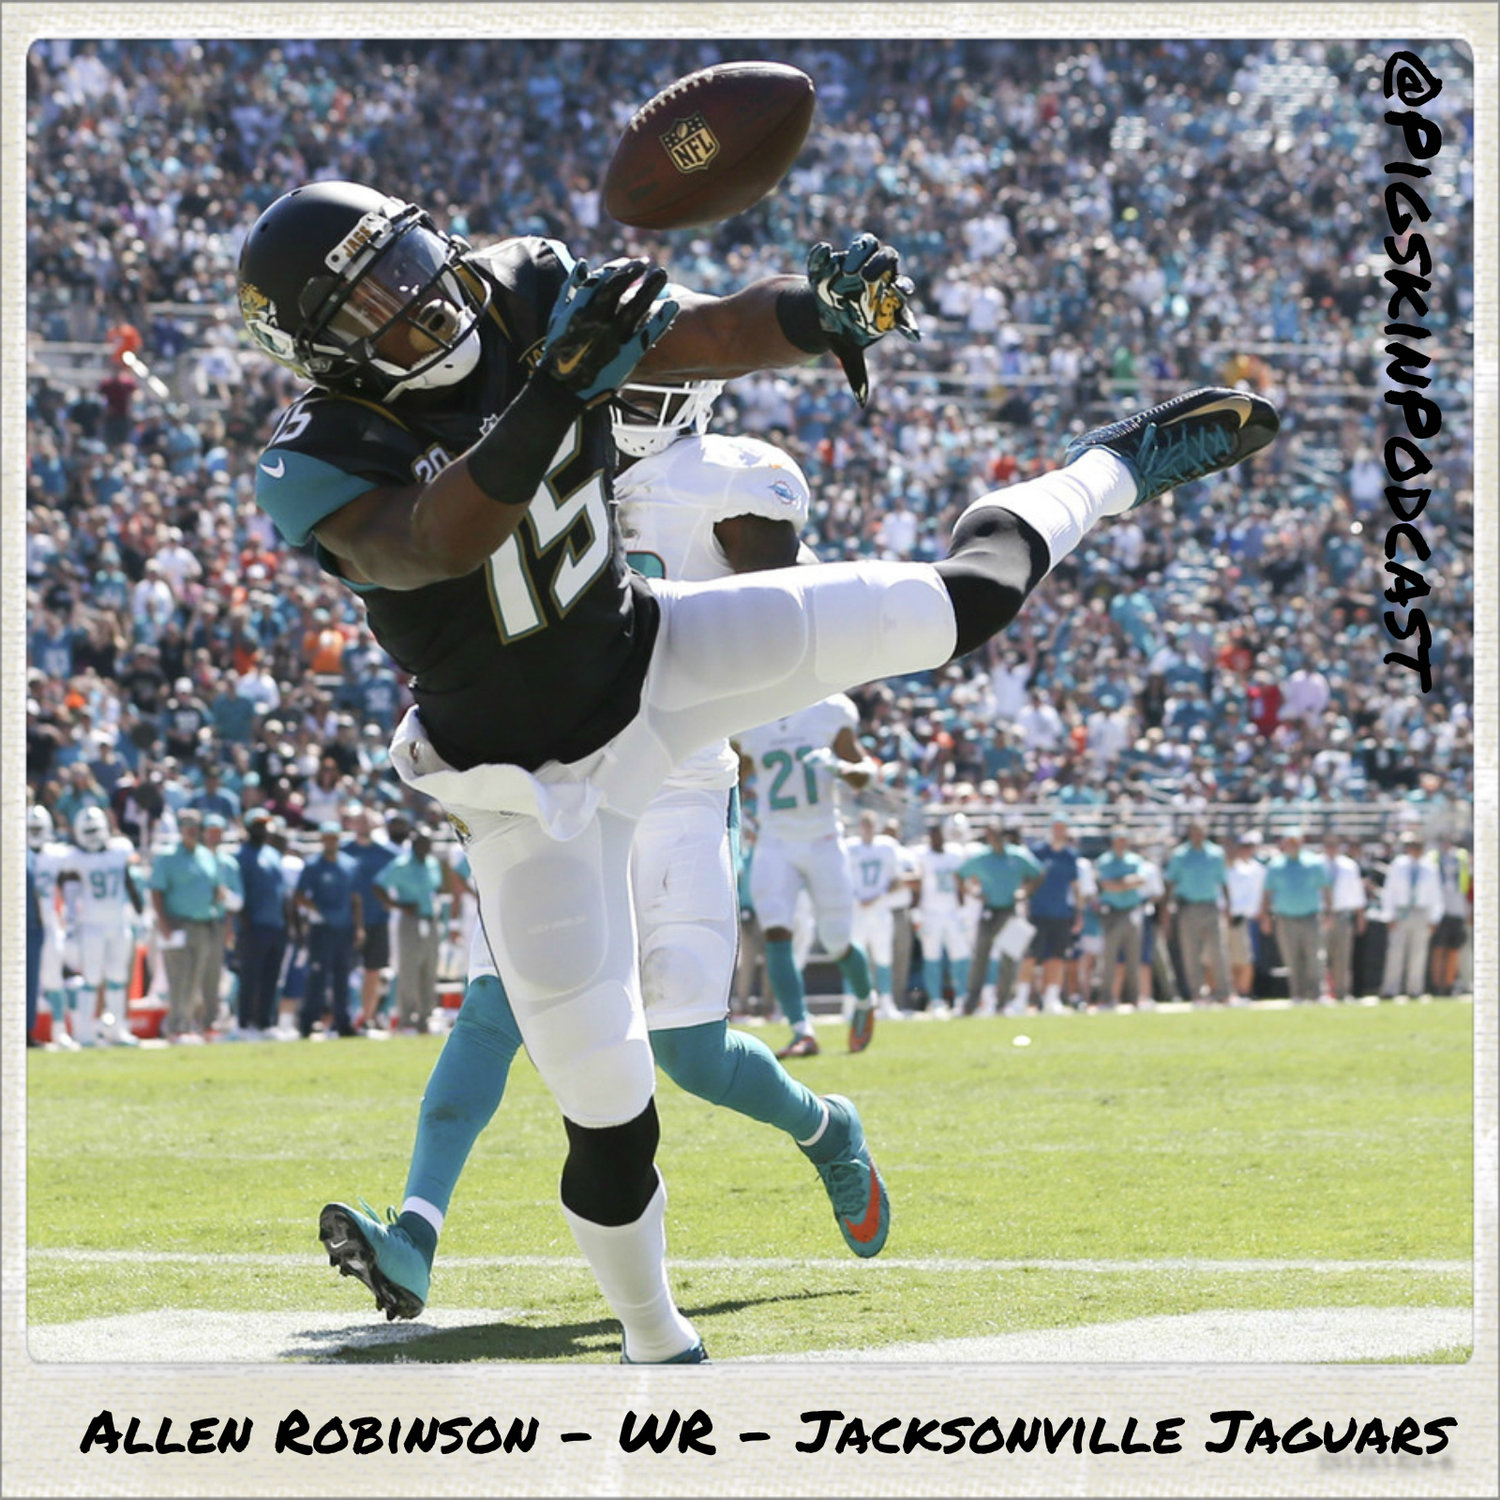 dd34410fe After an incredible season in which Robinson finished as the WR4 with 1400  receiving yards and 14 touchdowns, this was not the season Allen Robinson  wanted ...